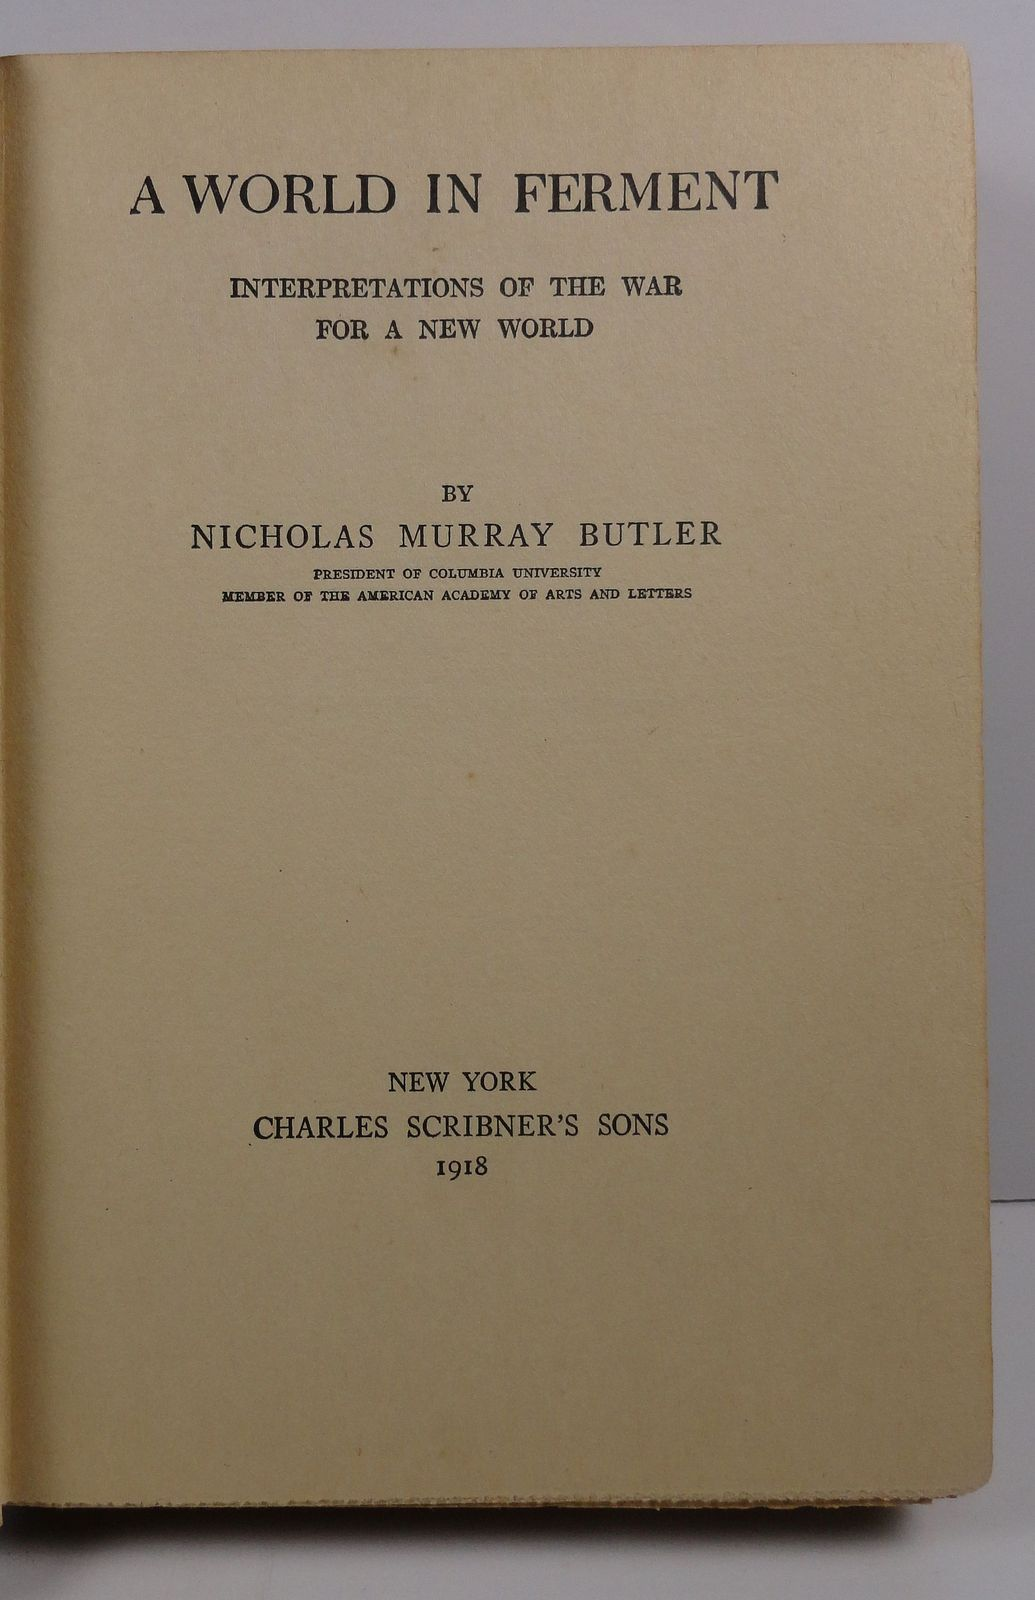 A World in Ferment by Nicholas Murray Butler 1918